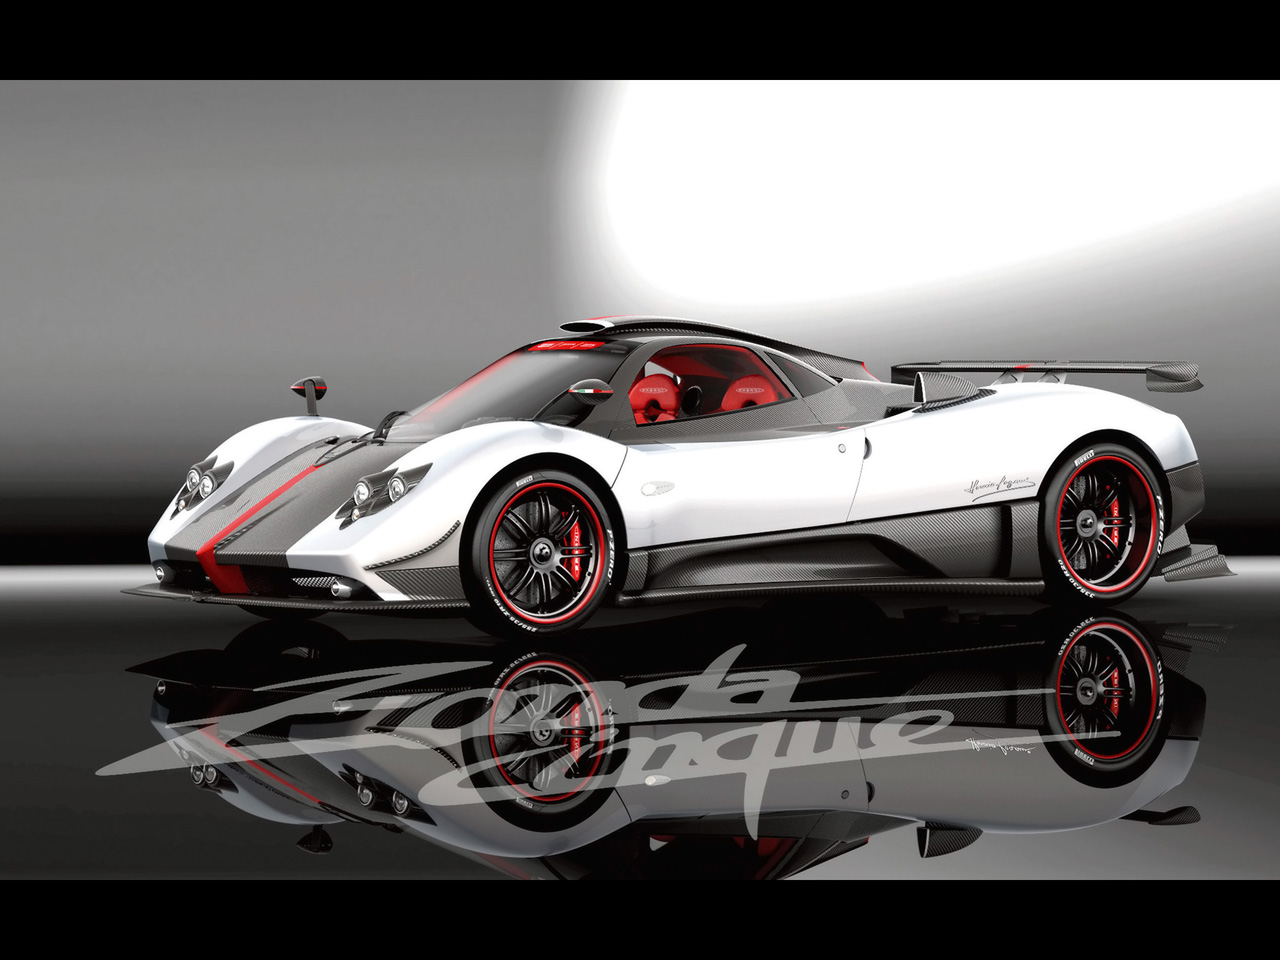 2018 Pagani Zonda Revolucion photo - 5